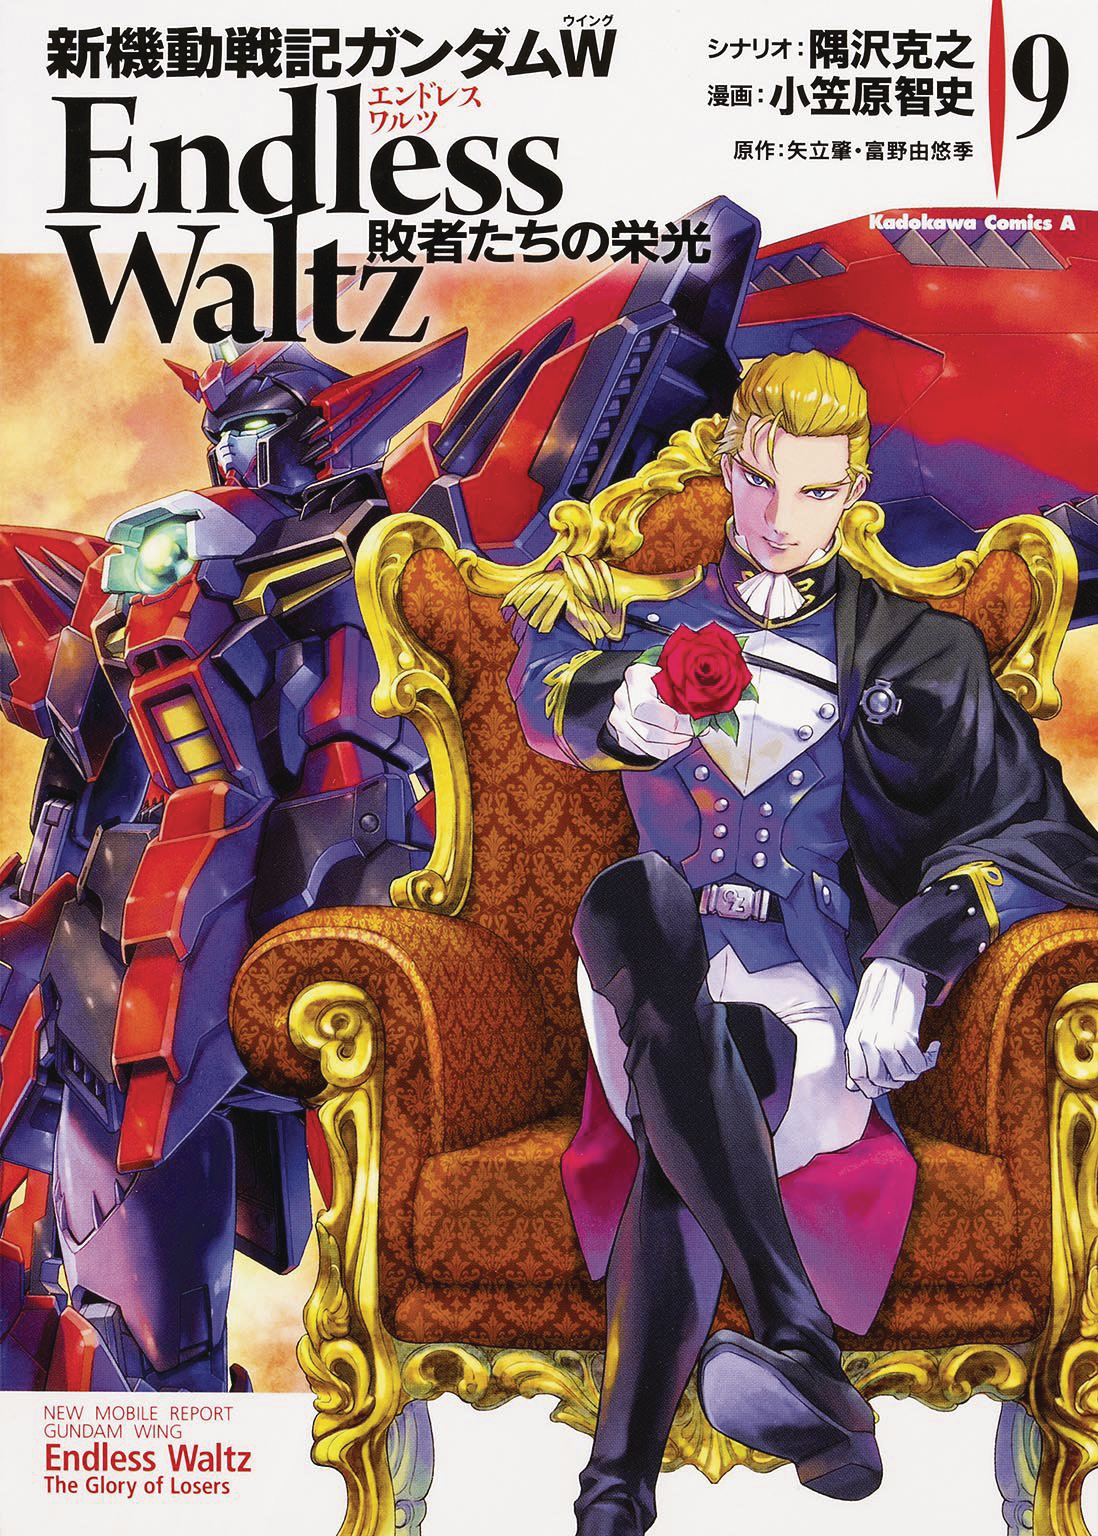 MOBILE SUIT GUNDAM WING GLORY OF THE LOSERS GN VOL 09